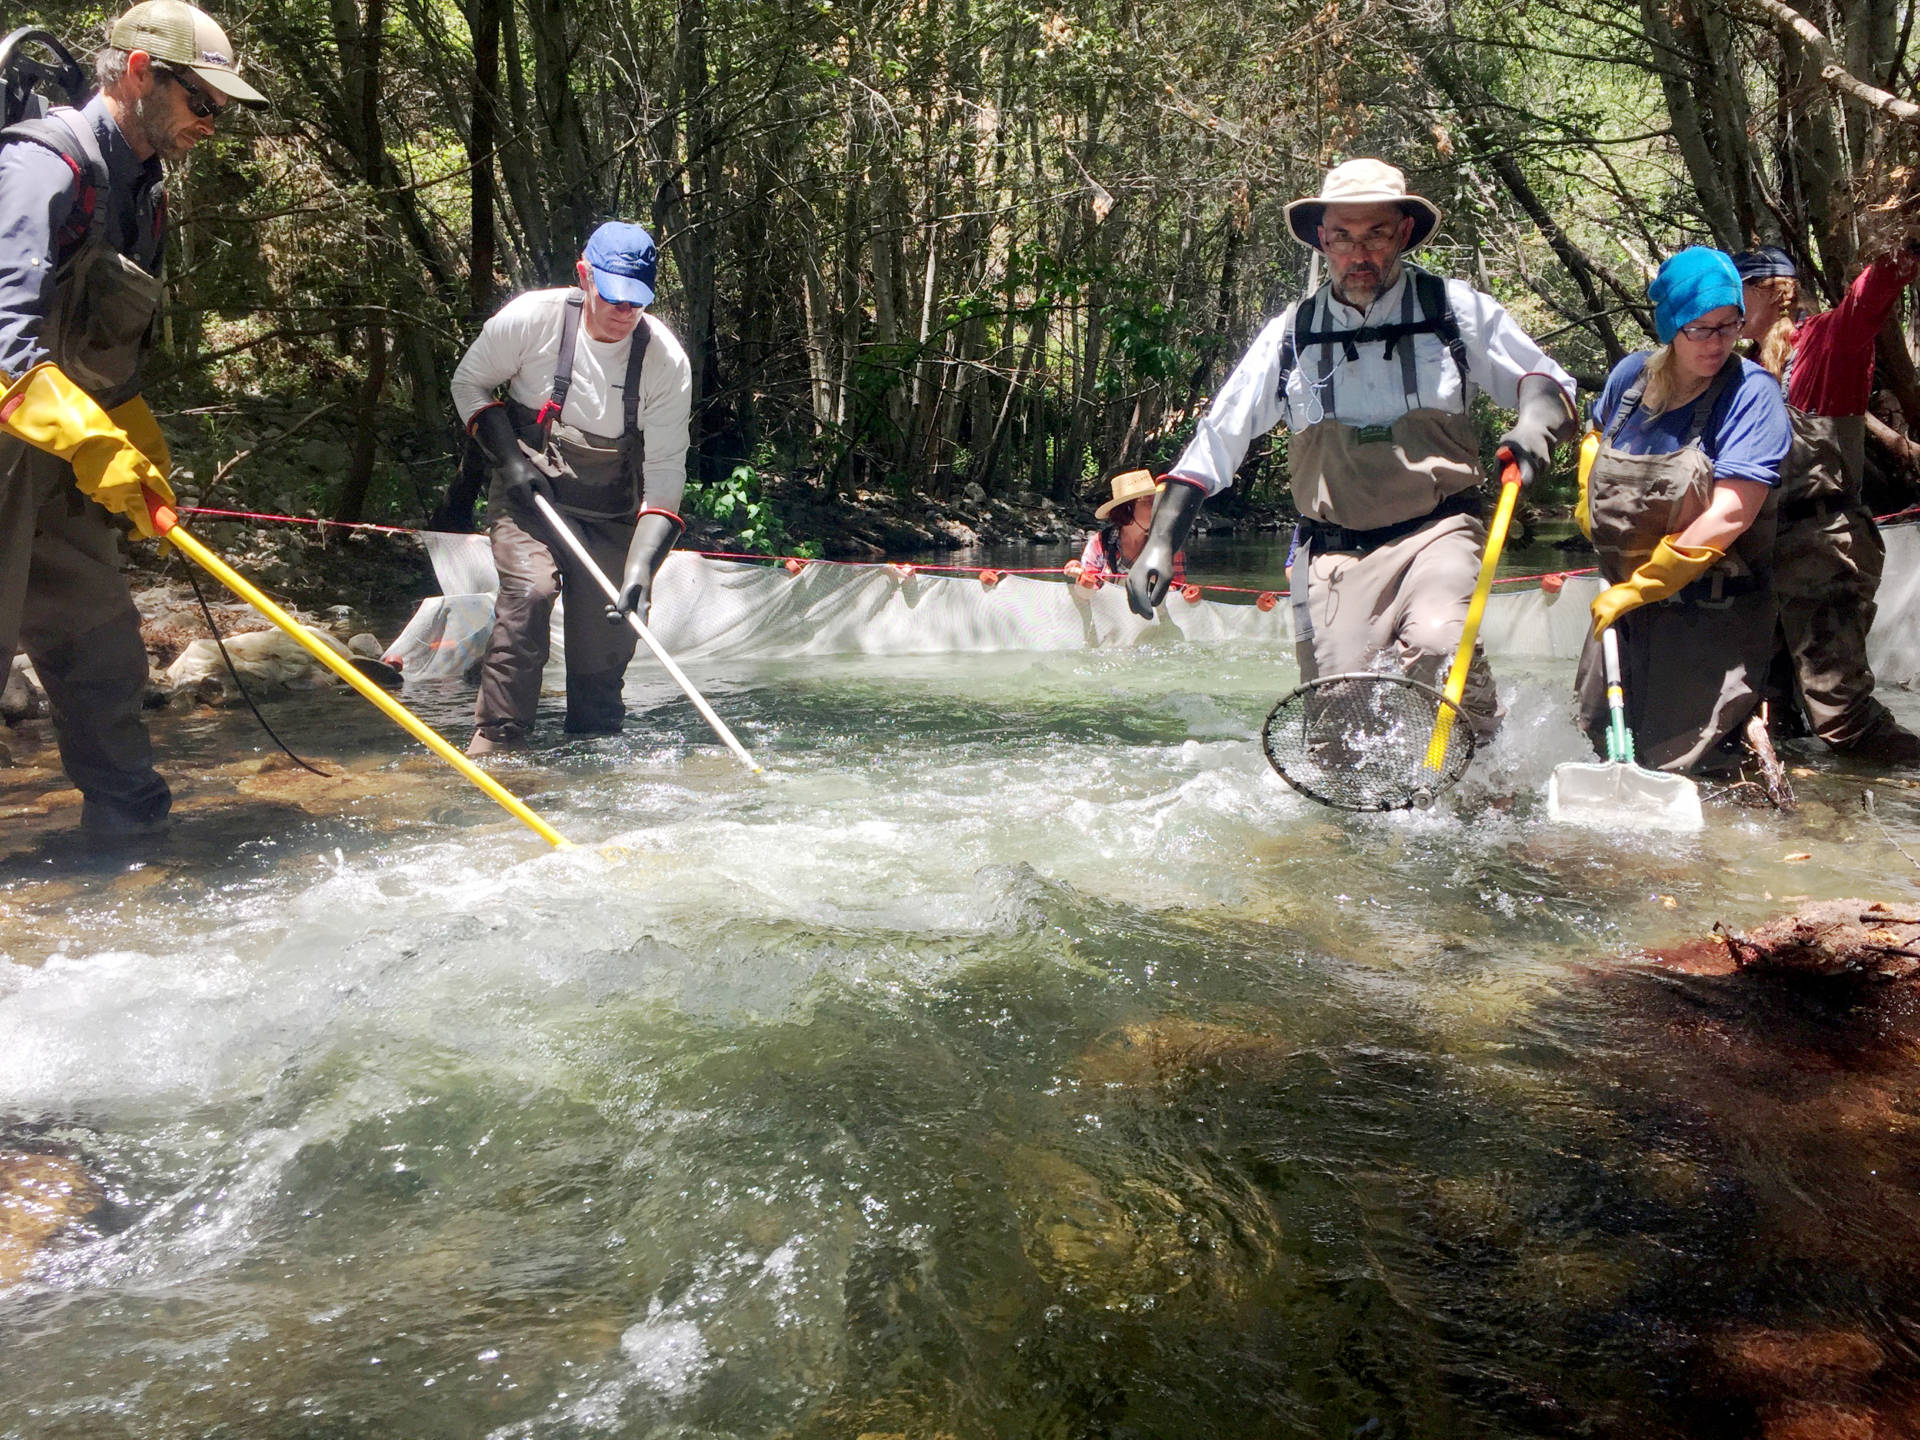 From left to right: Scientists Dave Rundio, Nate Mantua, Tommy Williams, Laeticia Wilkins, and Heidi Fish. Rundio and Williams use electrofishers to catch steelhead trout on the Carmel River in Monterey County. Lindsey Hoshaw/KQED